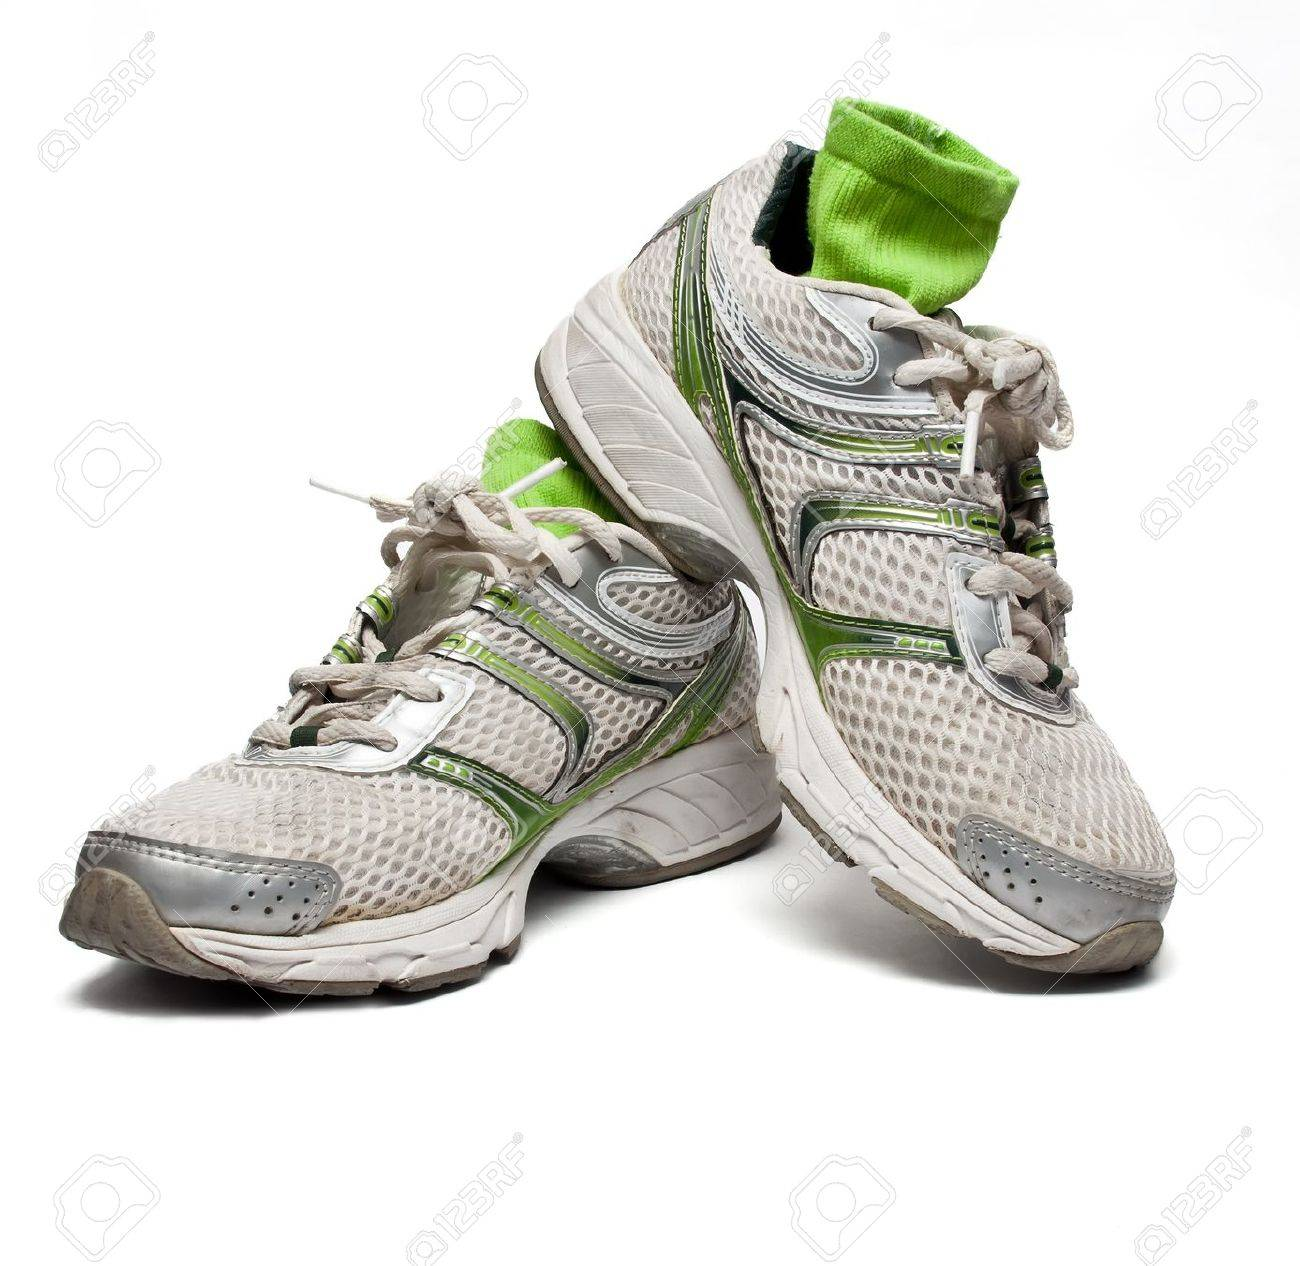 Used running shoes with socks Stock Photo - 11359824